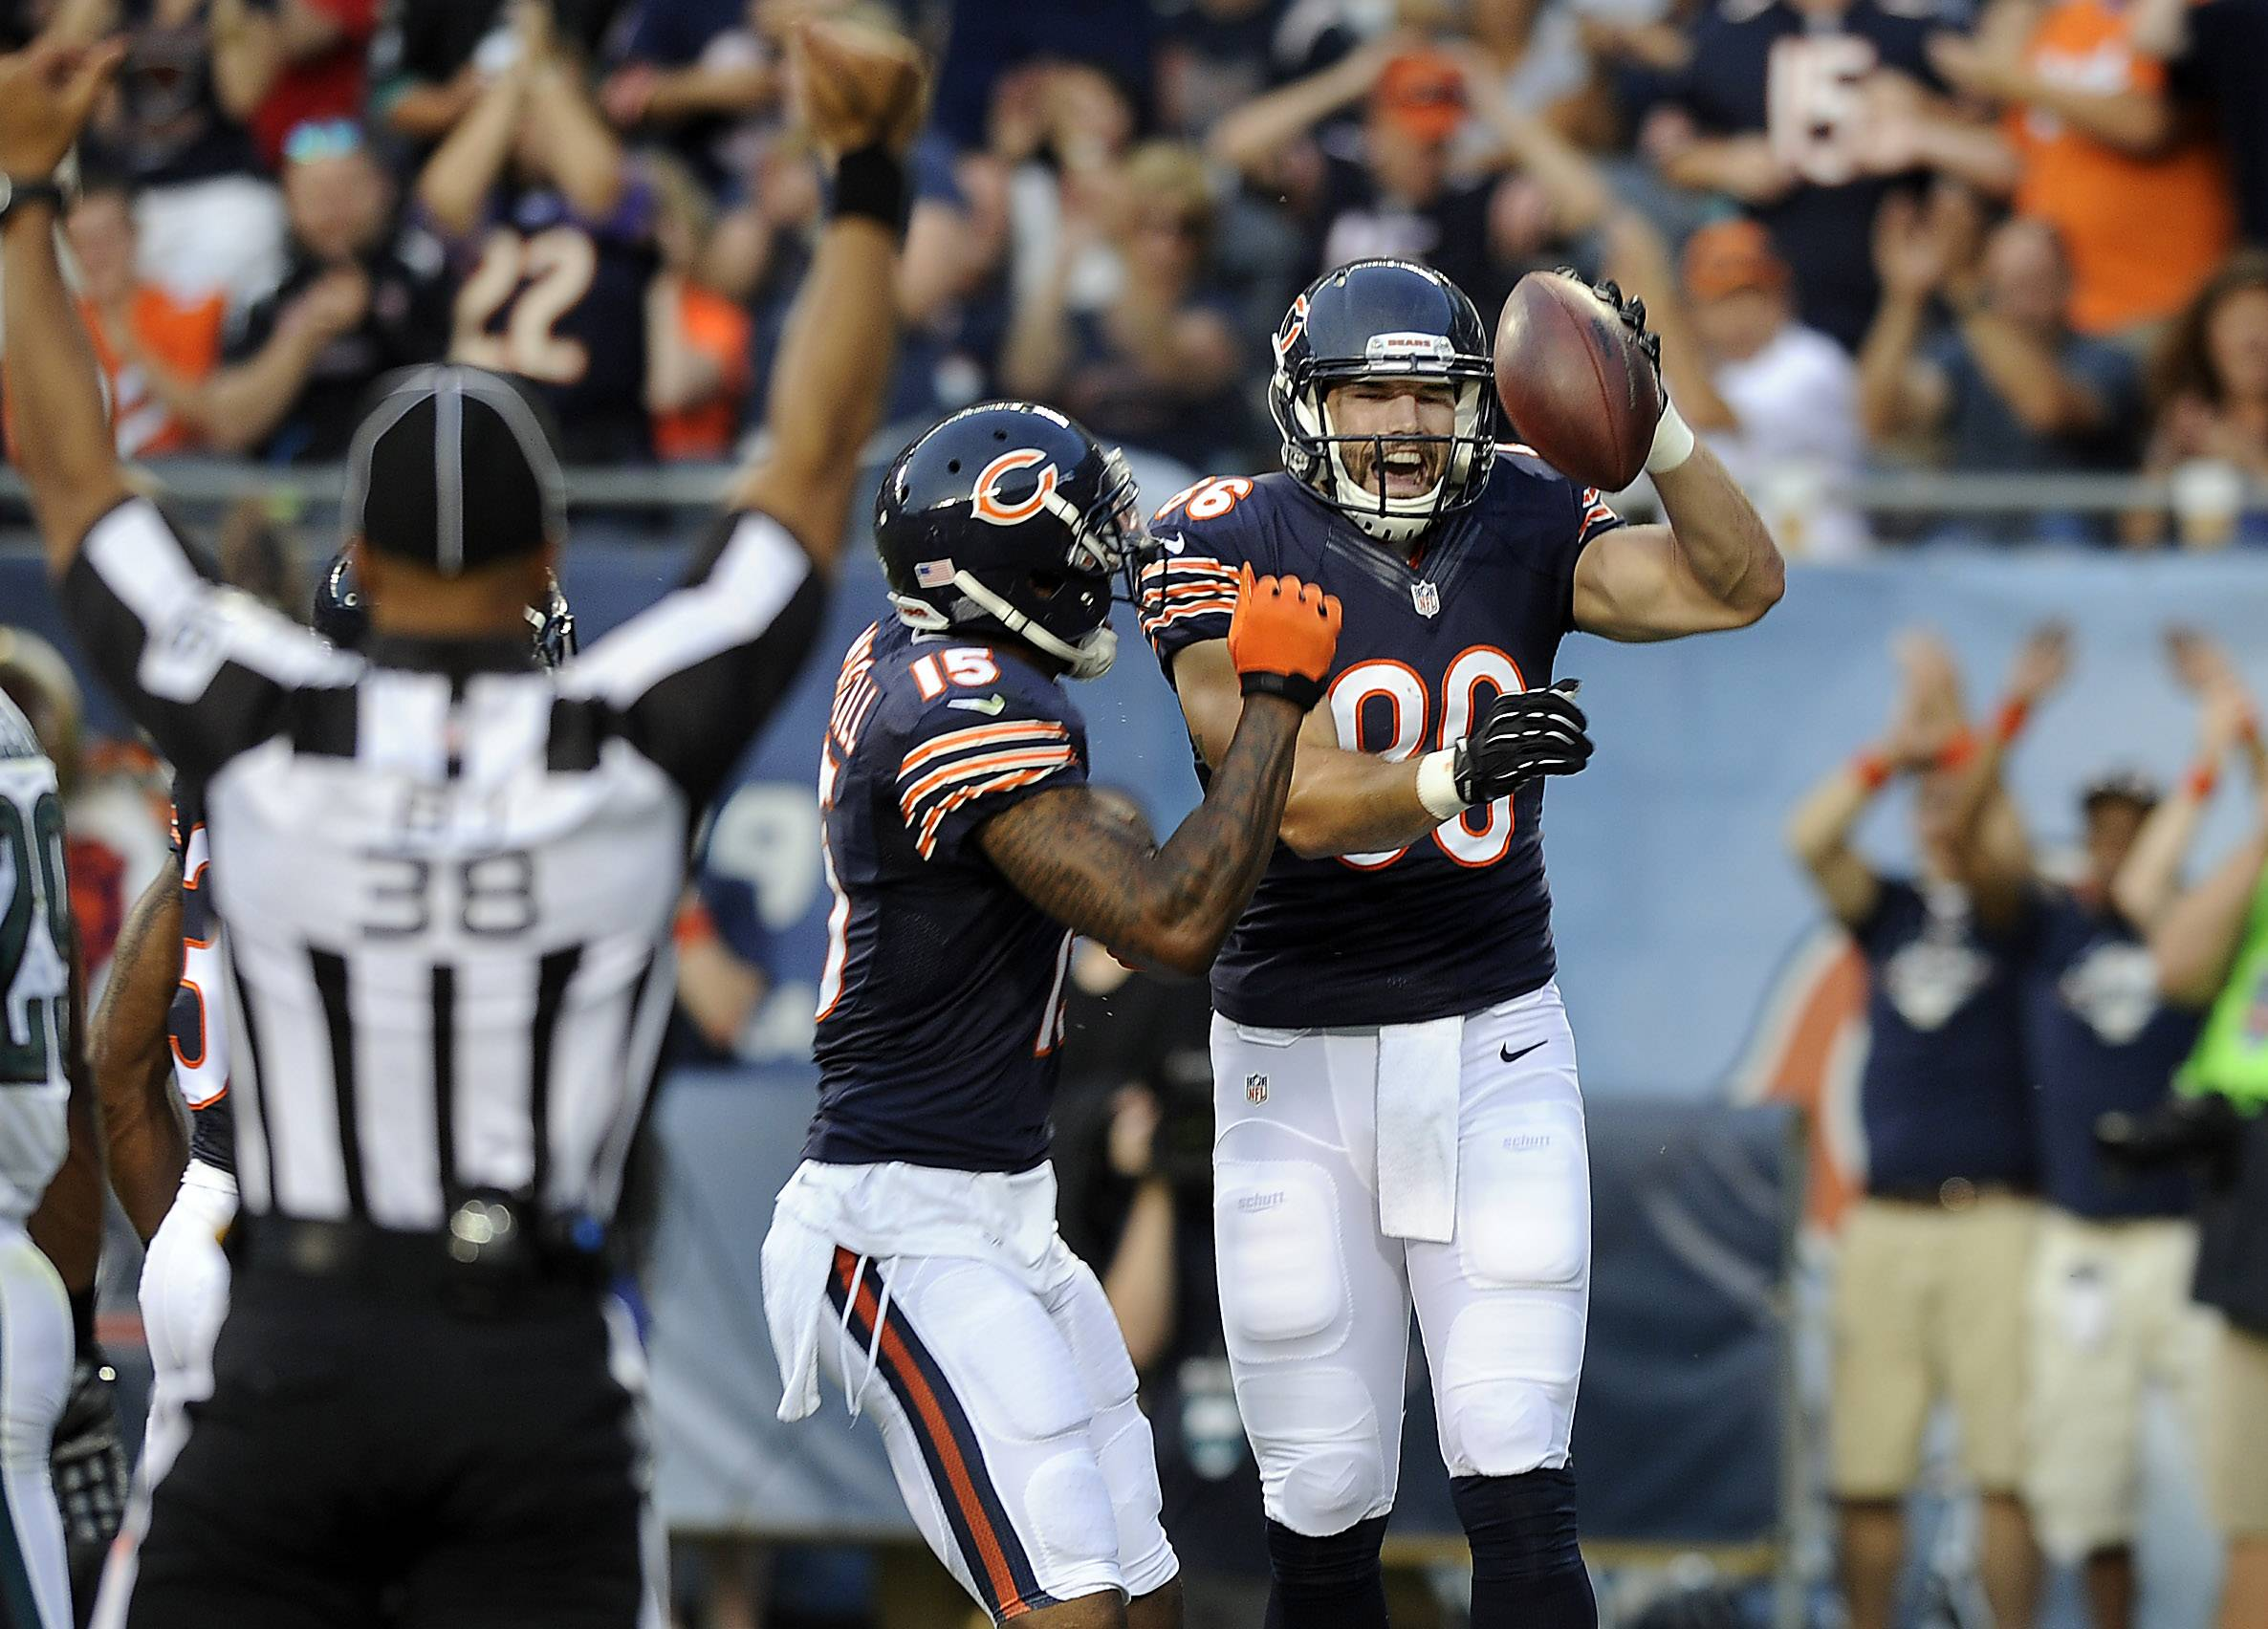 Chicago Bears Zach Miller celebrates his first quarter touchdown with teammate Brandon Marshall.